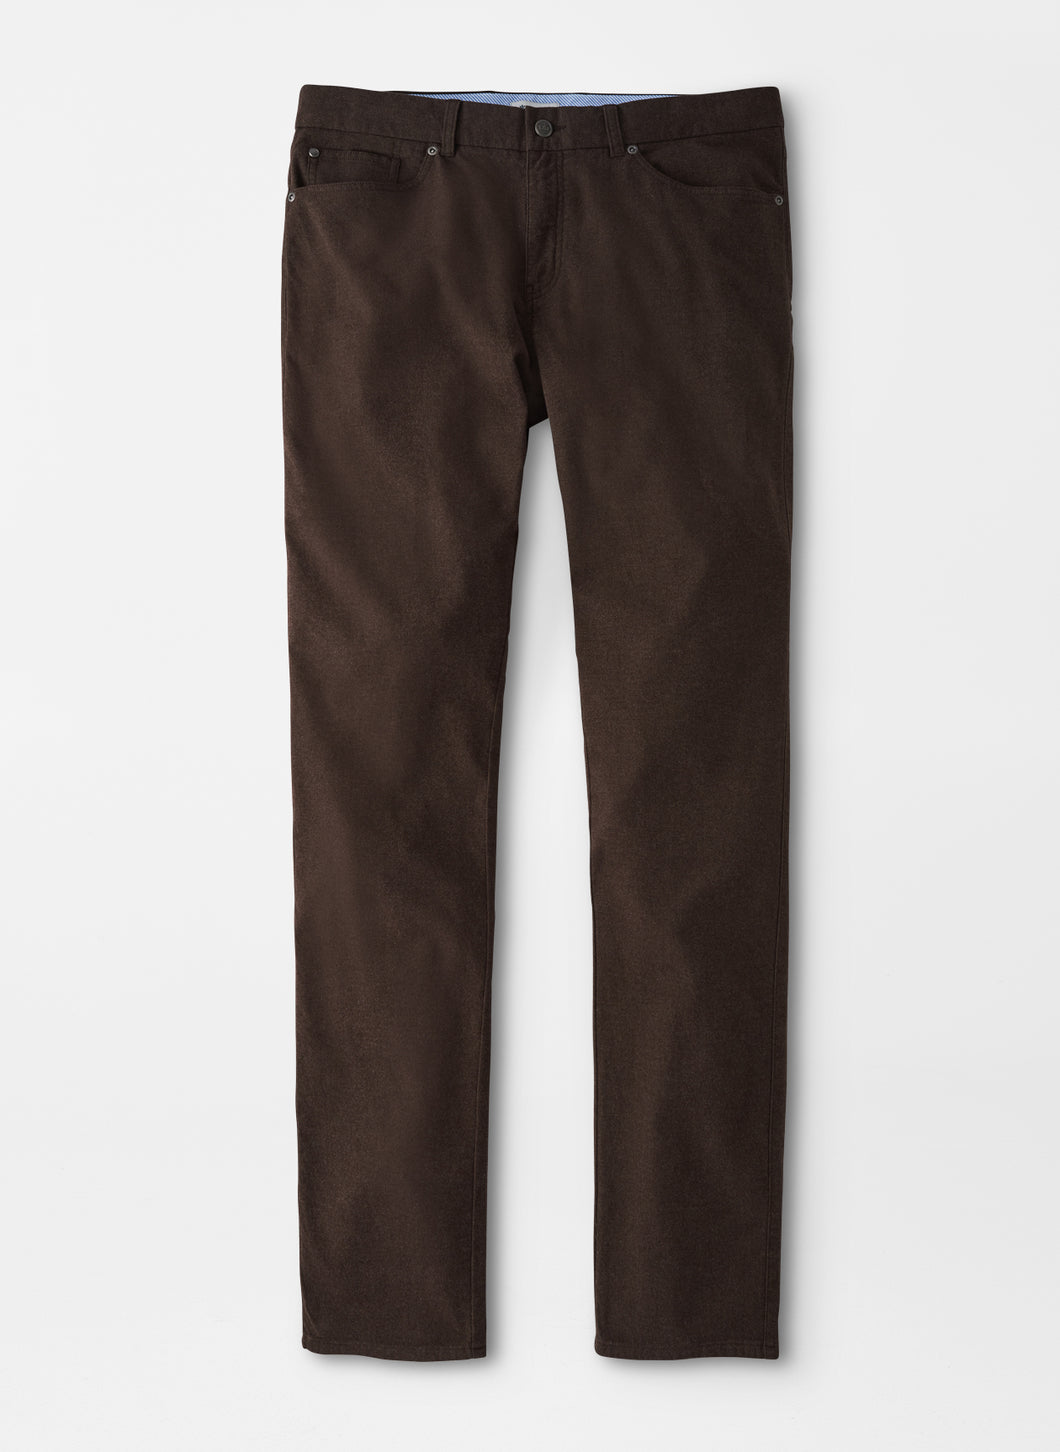 Peter Millar Flannel Five-Pocket Pant in Carob Brown